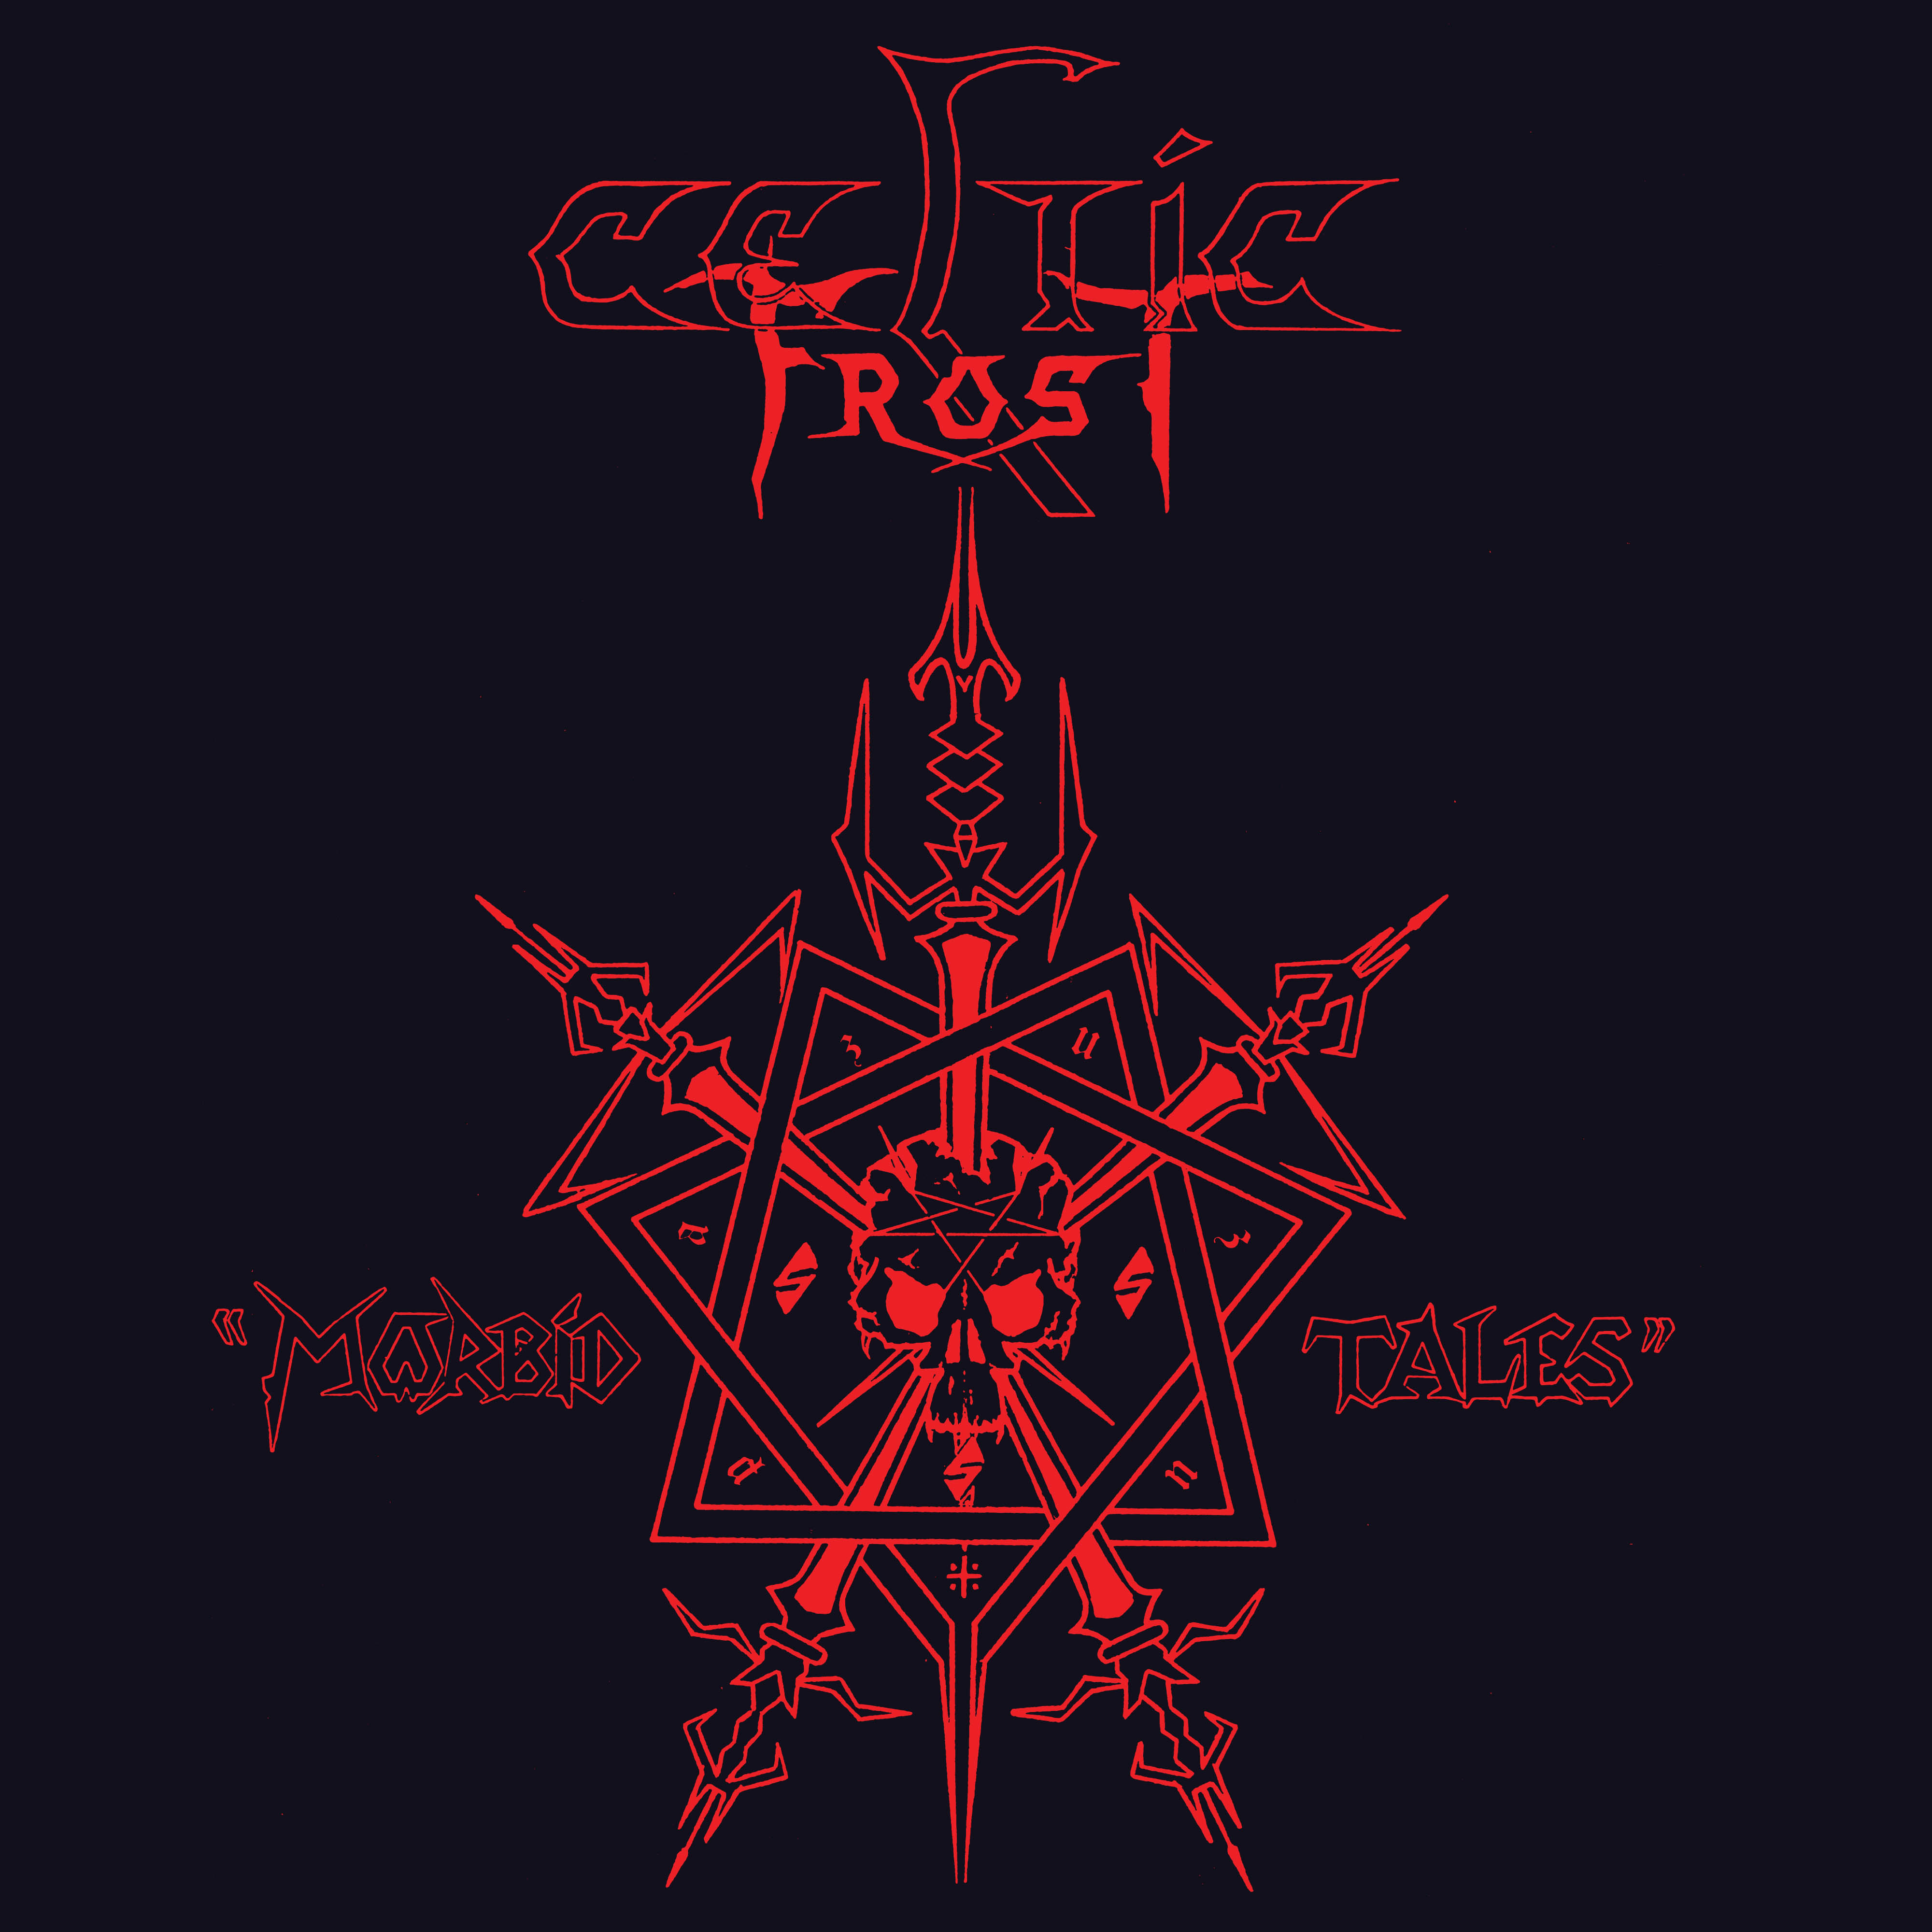 Celtic Frost – Morbid Tales Featured Image